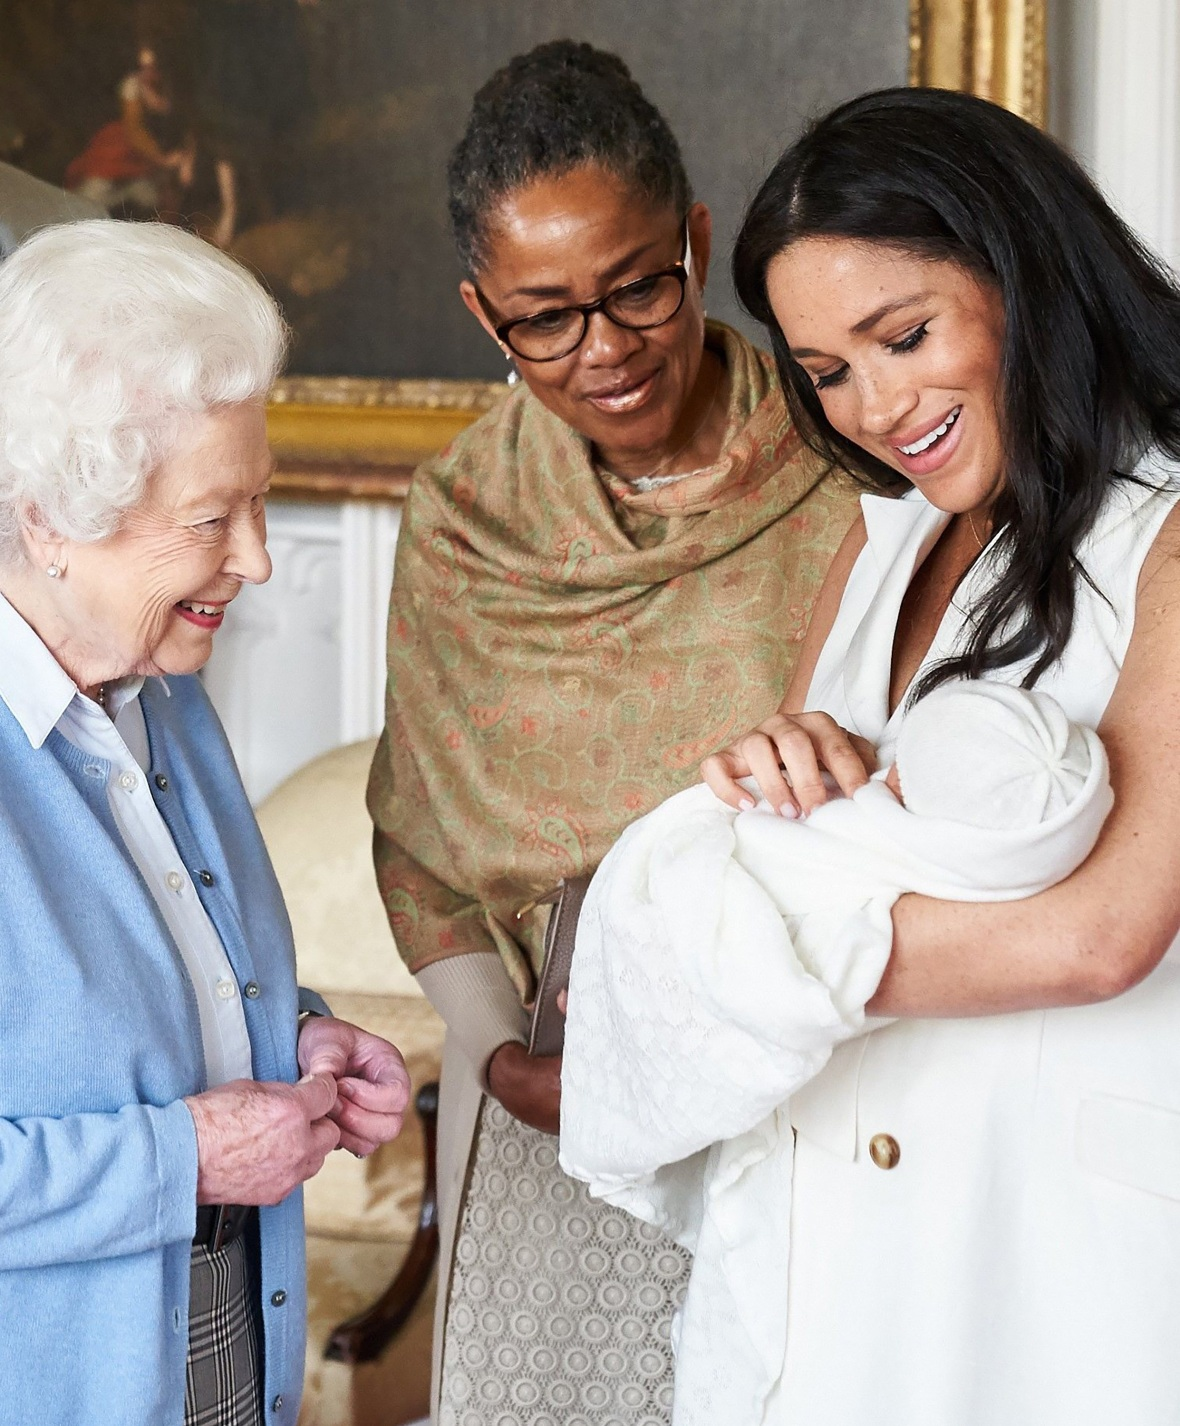 Meghan Markle Takes Archie to Meet Queen Elizabreth and Doria Ragland